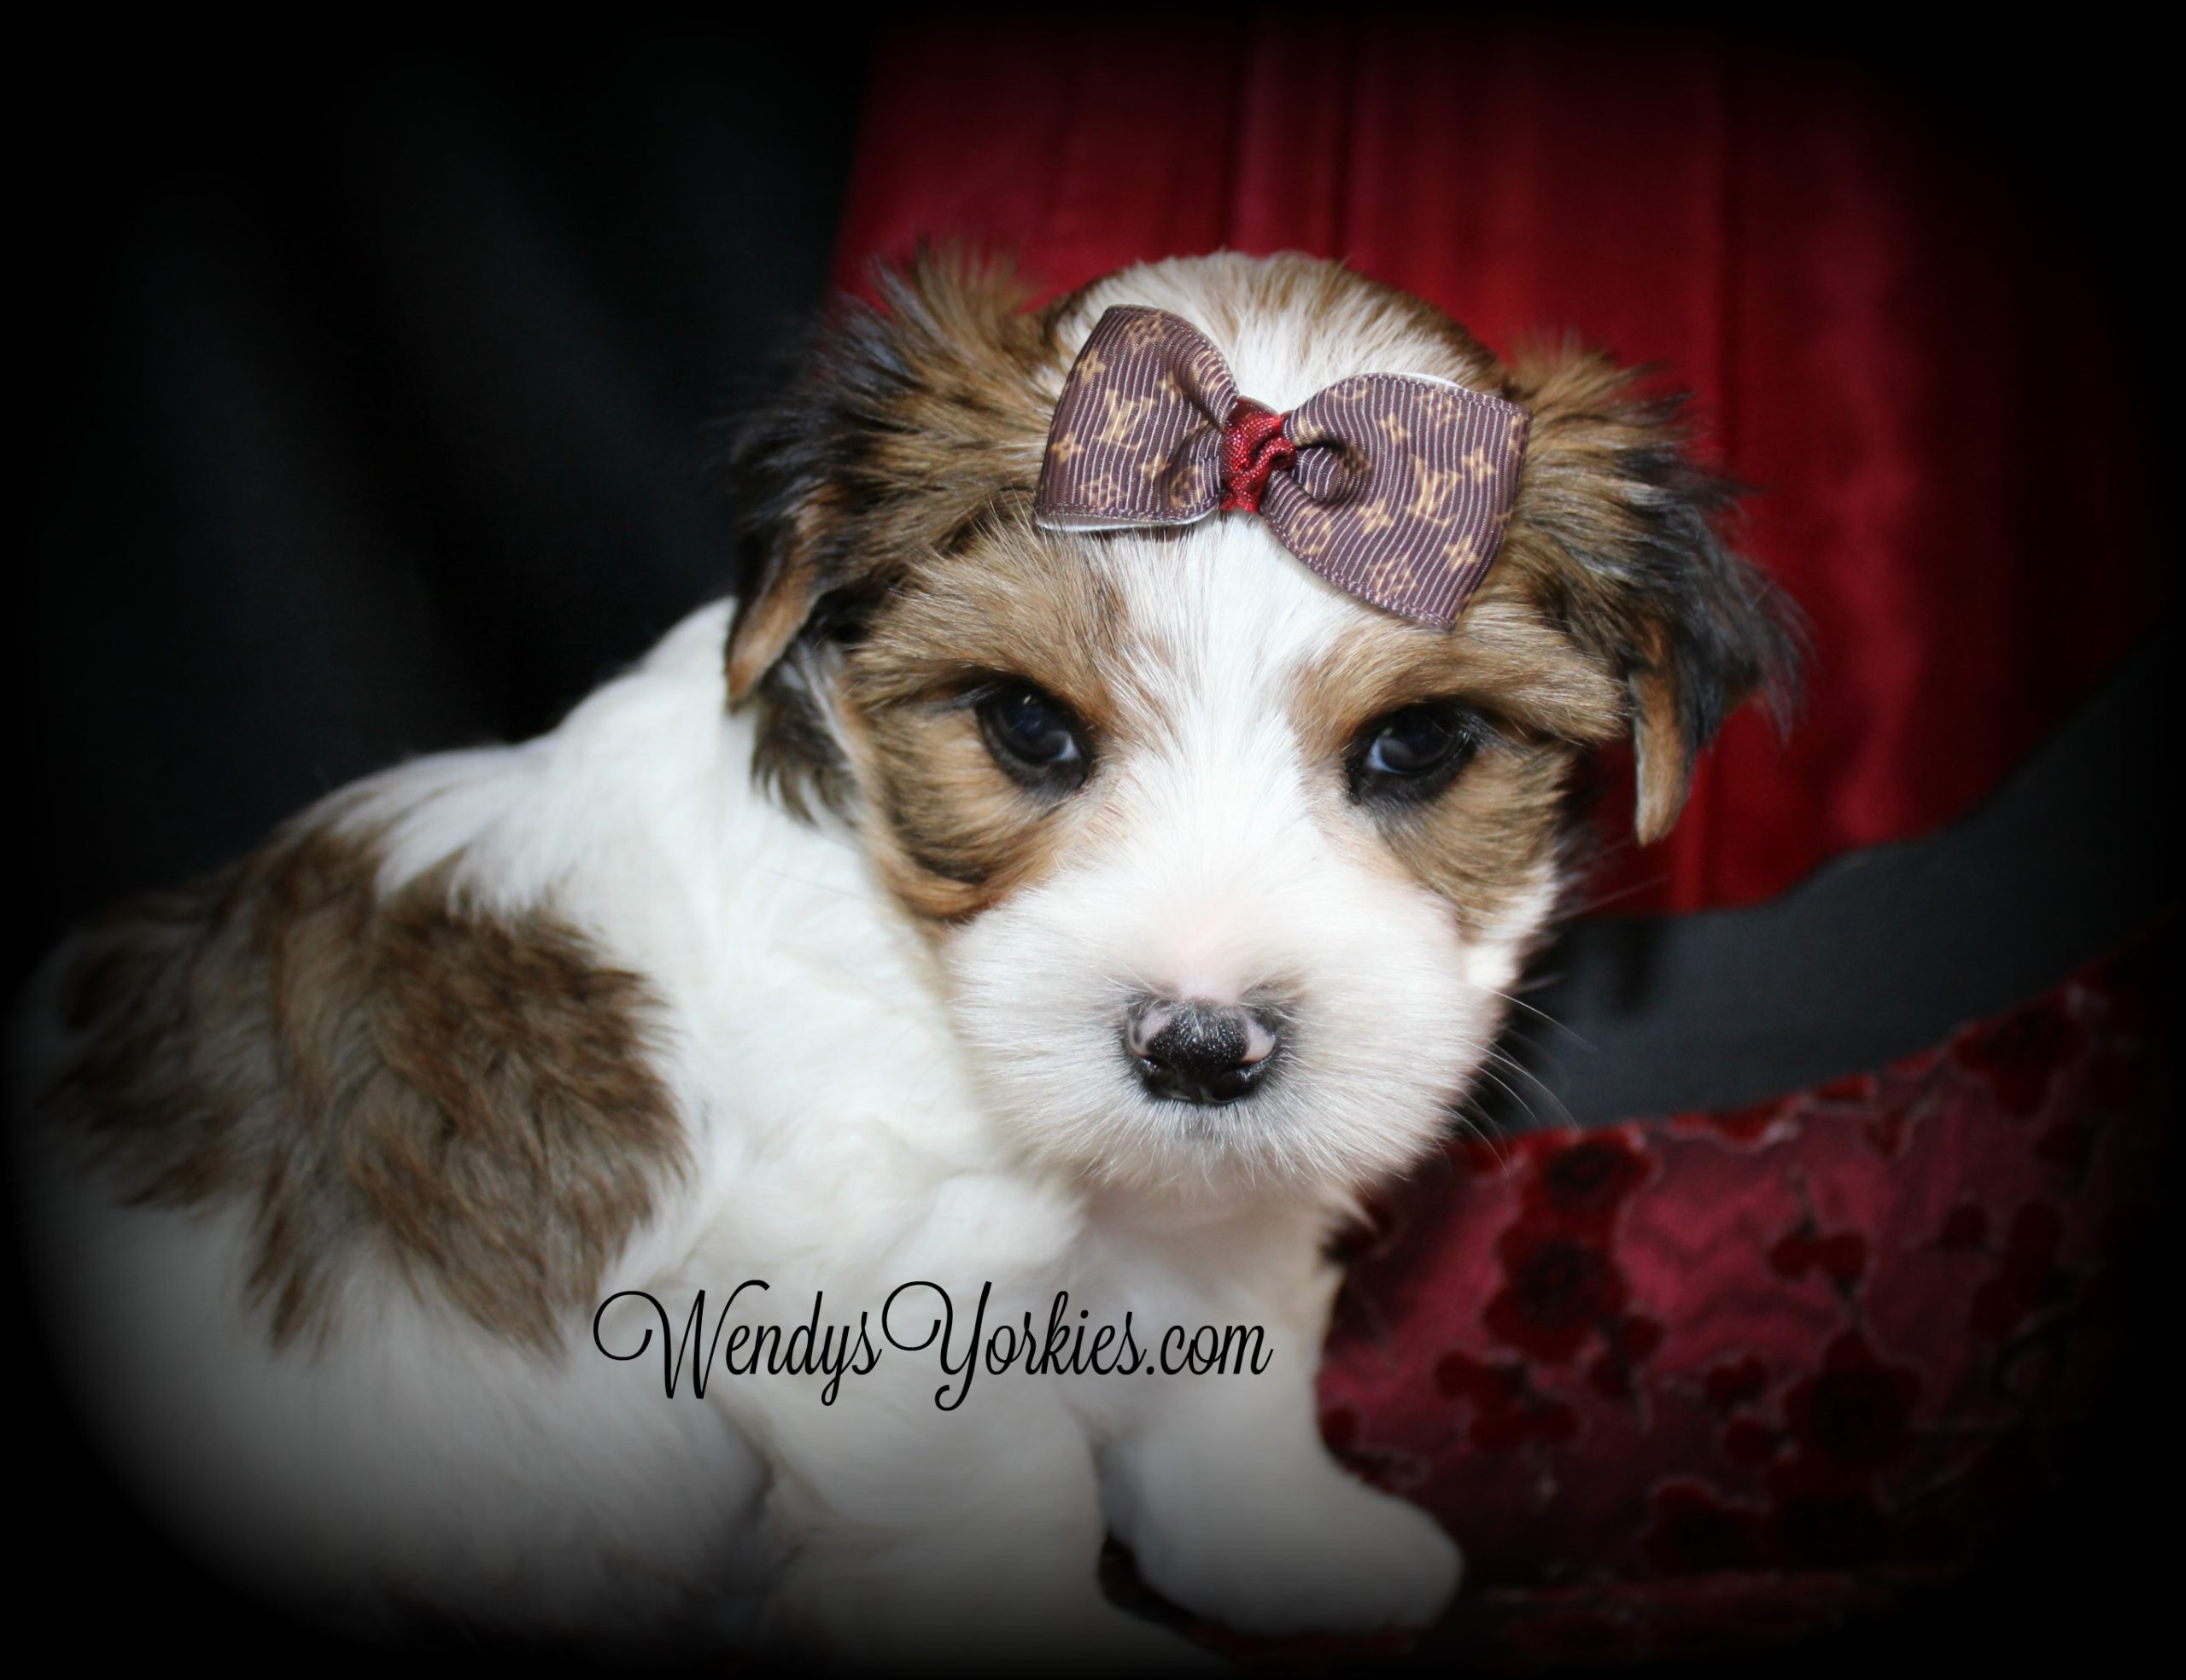 Parti Yorkie puppies for sale in Texas, reese m1, WendysYorkies.com